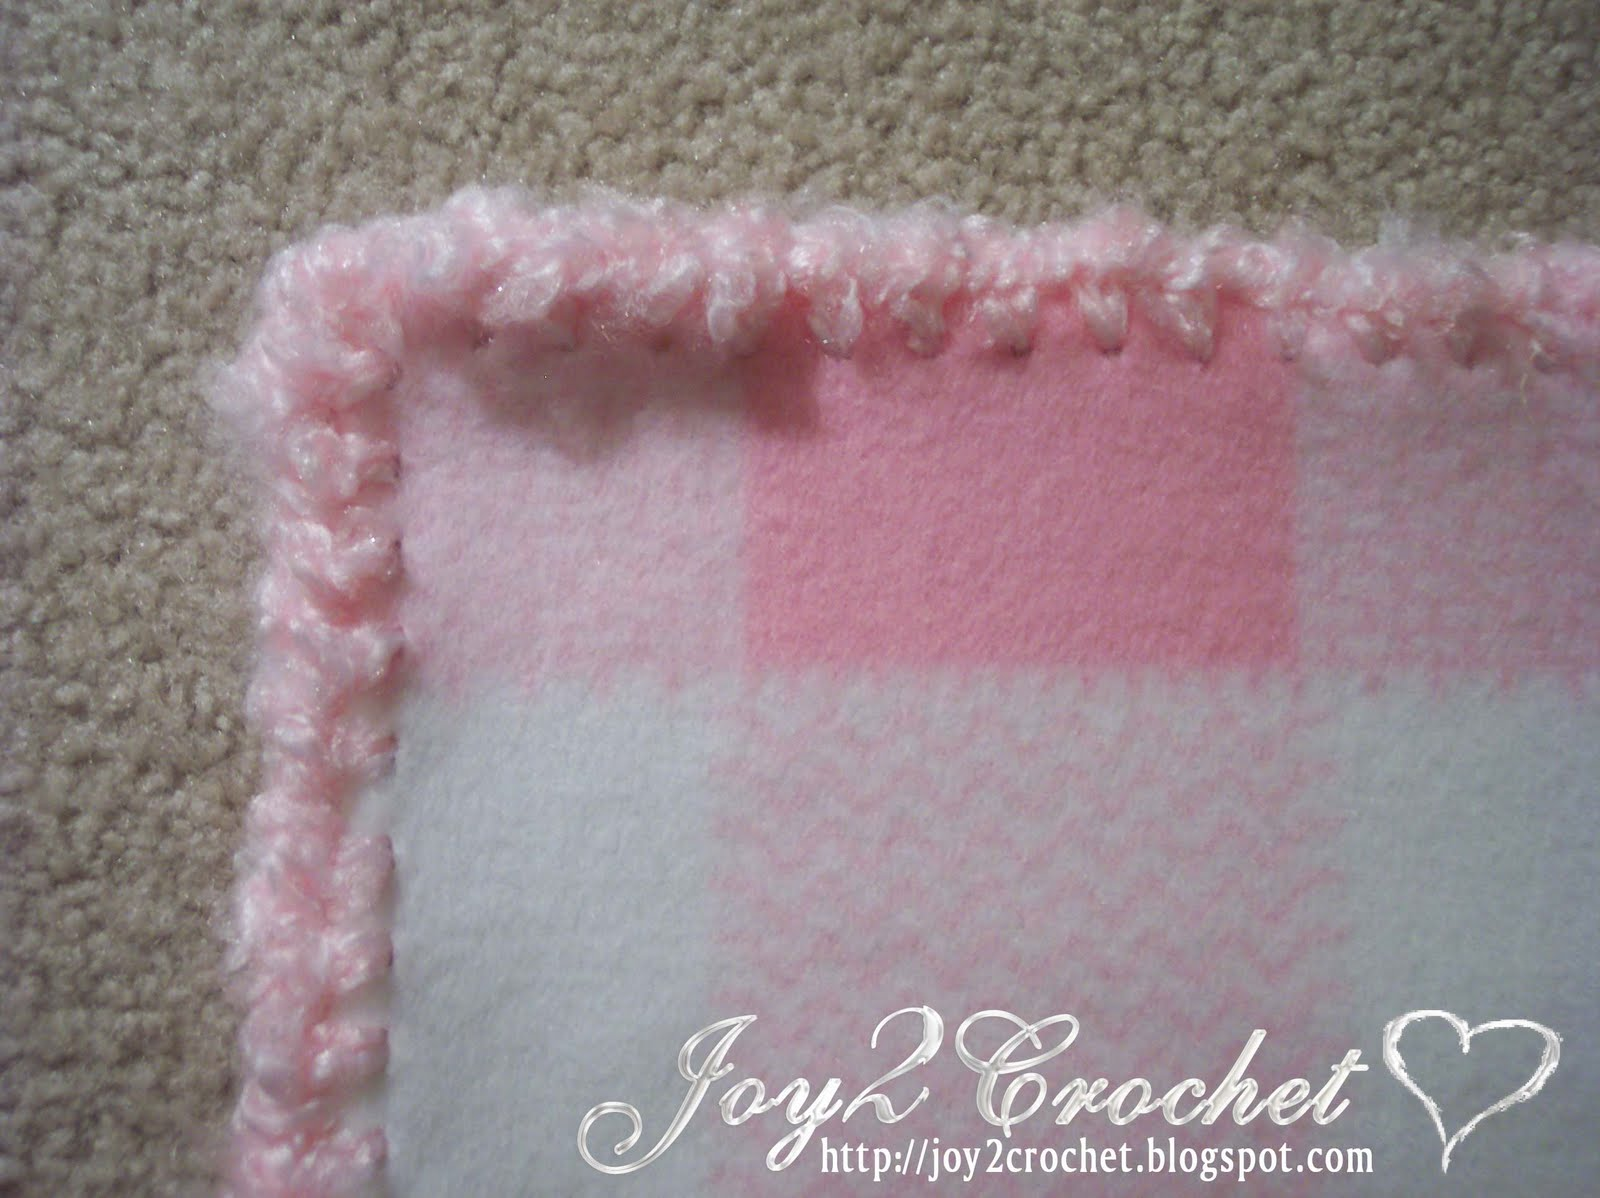 Joy 2 Crochet: More Crocheted Fleece Baby Blankets